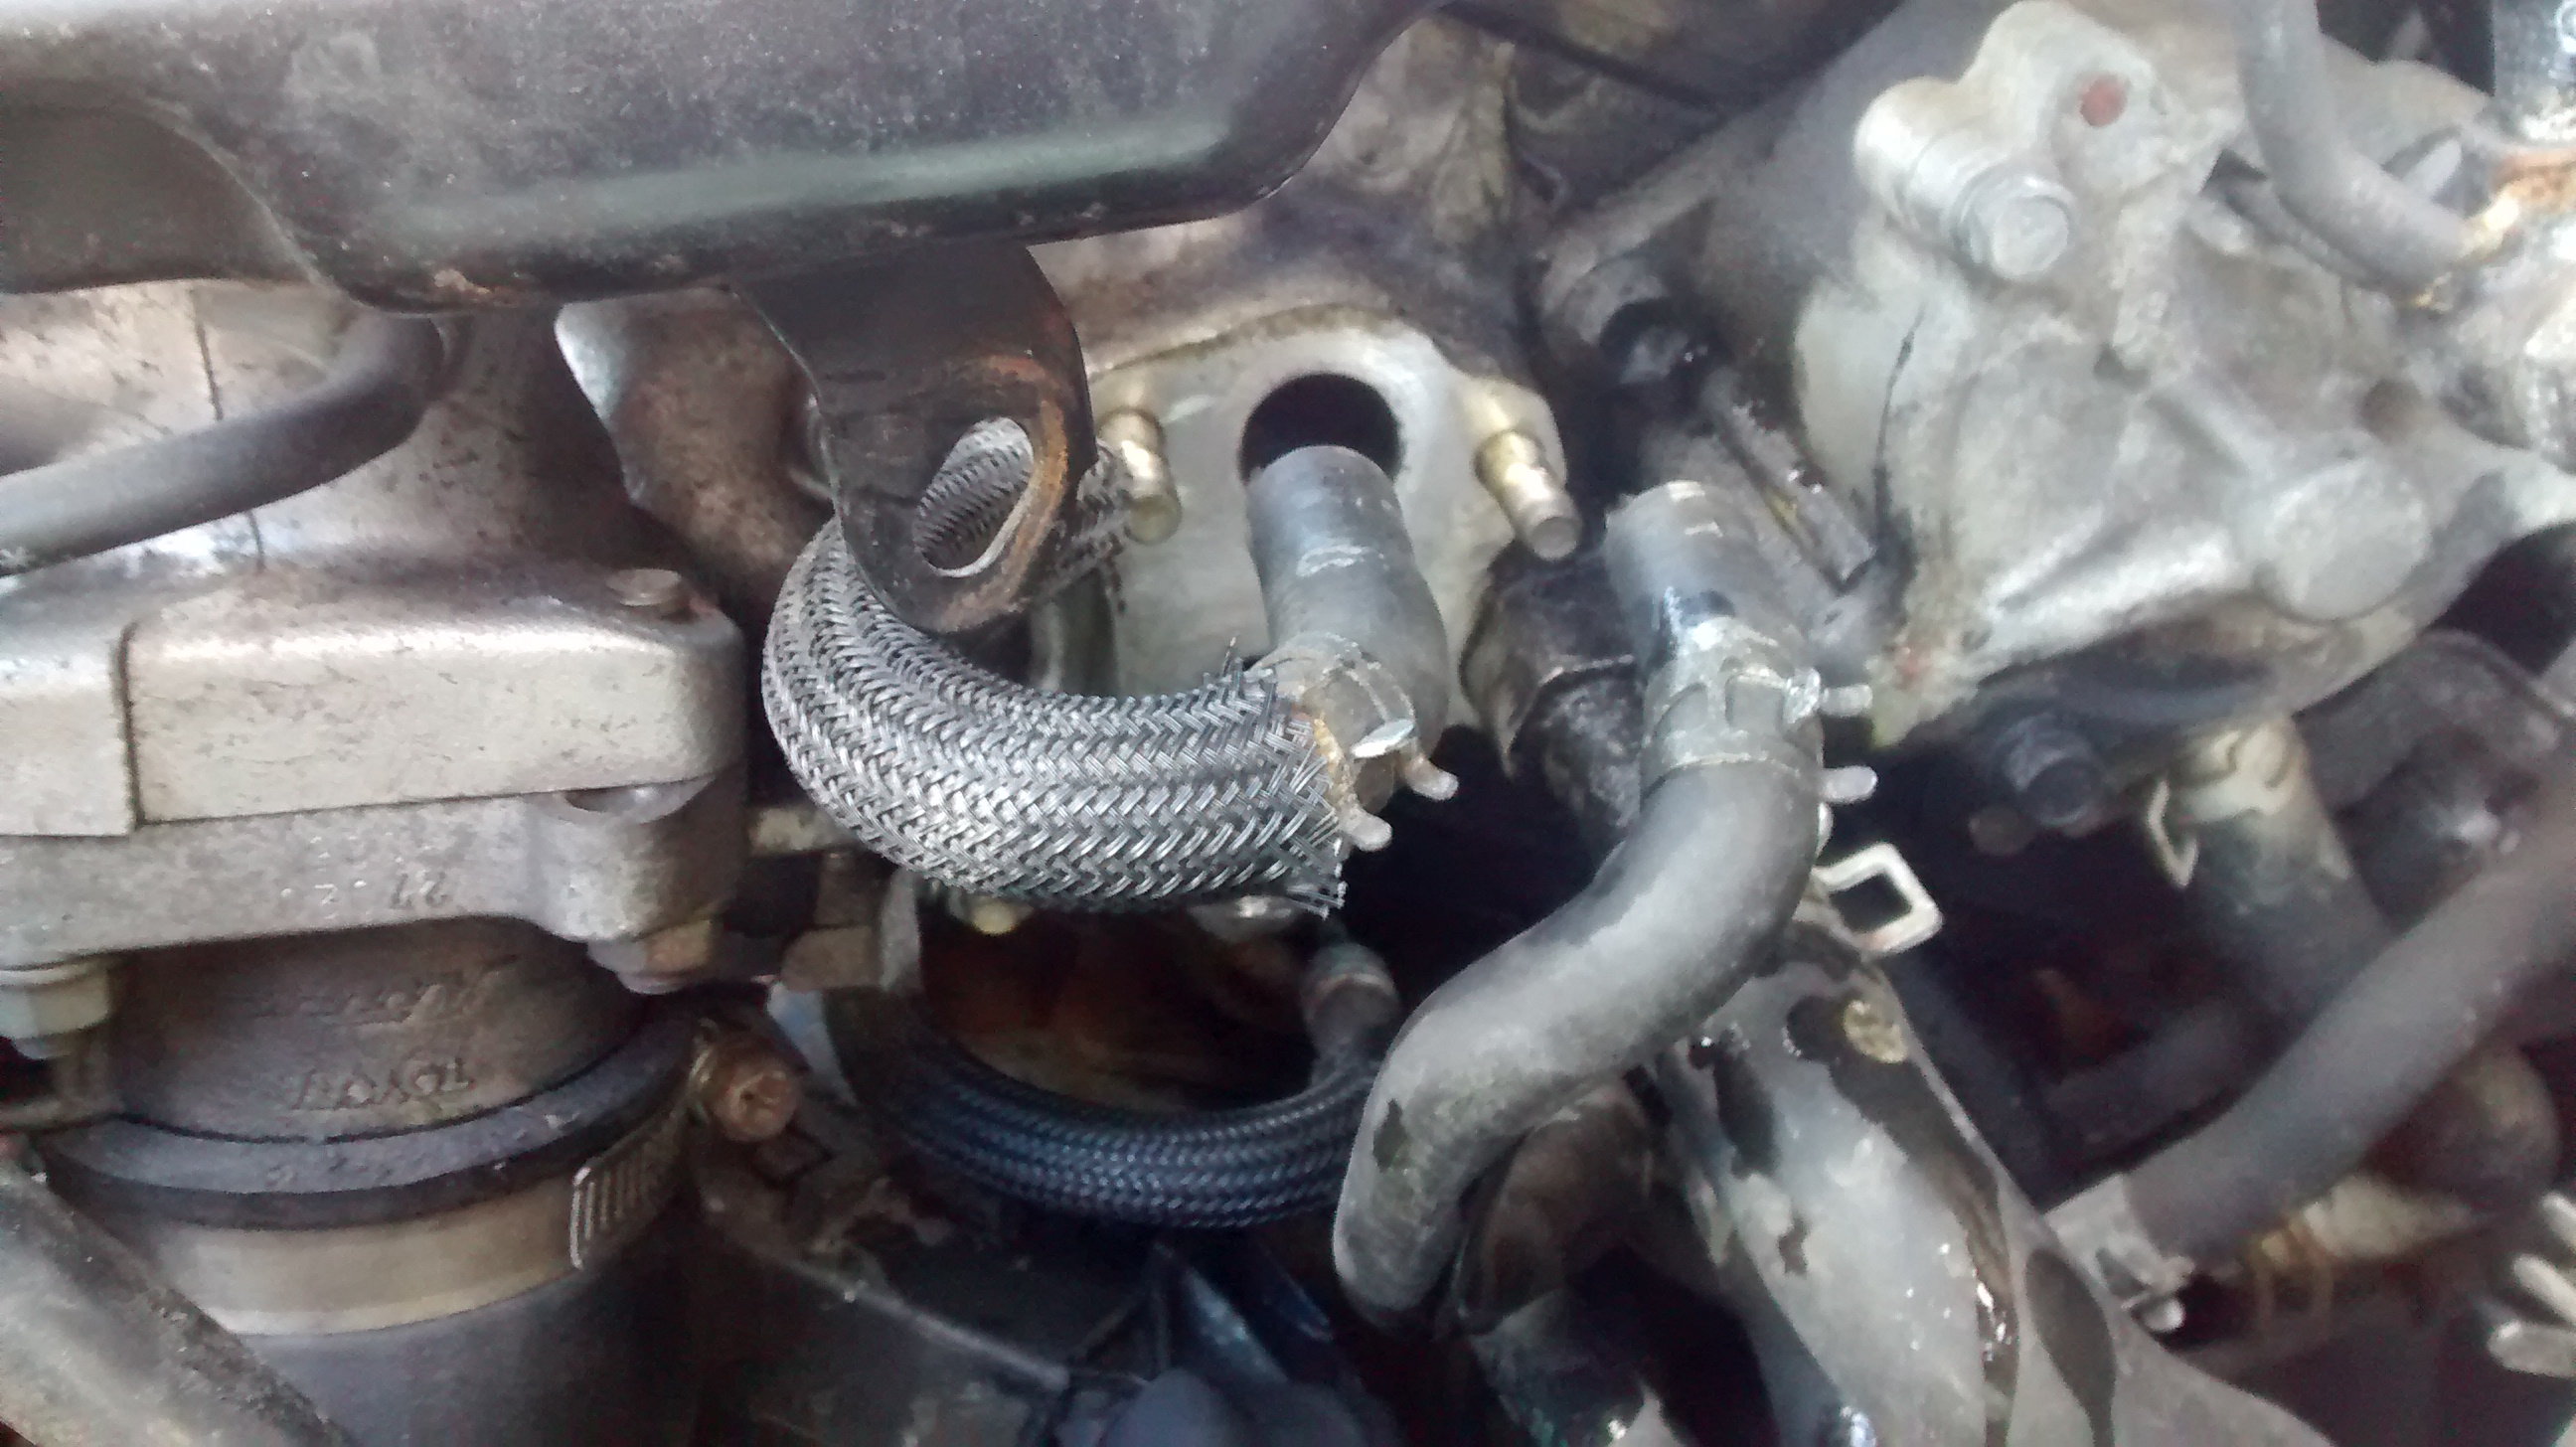 SCV and PCV valve location? - Avensis Club - Toyota Owners